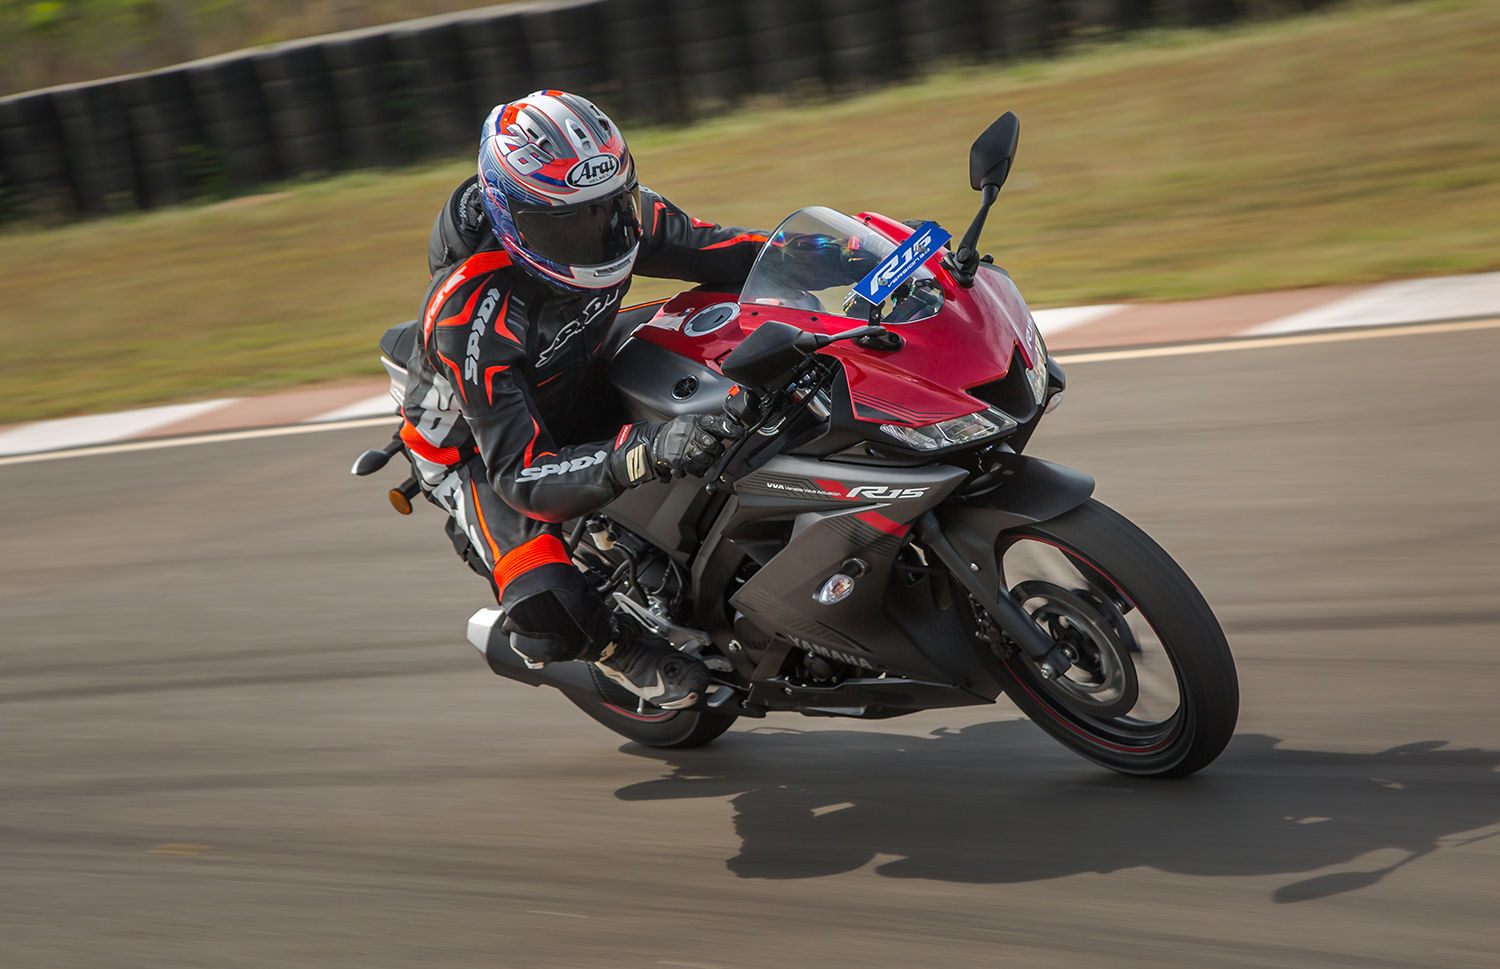 BS6 Yamaha R15 V3.0, Fascino Launching On December 19